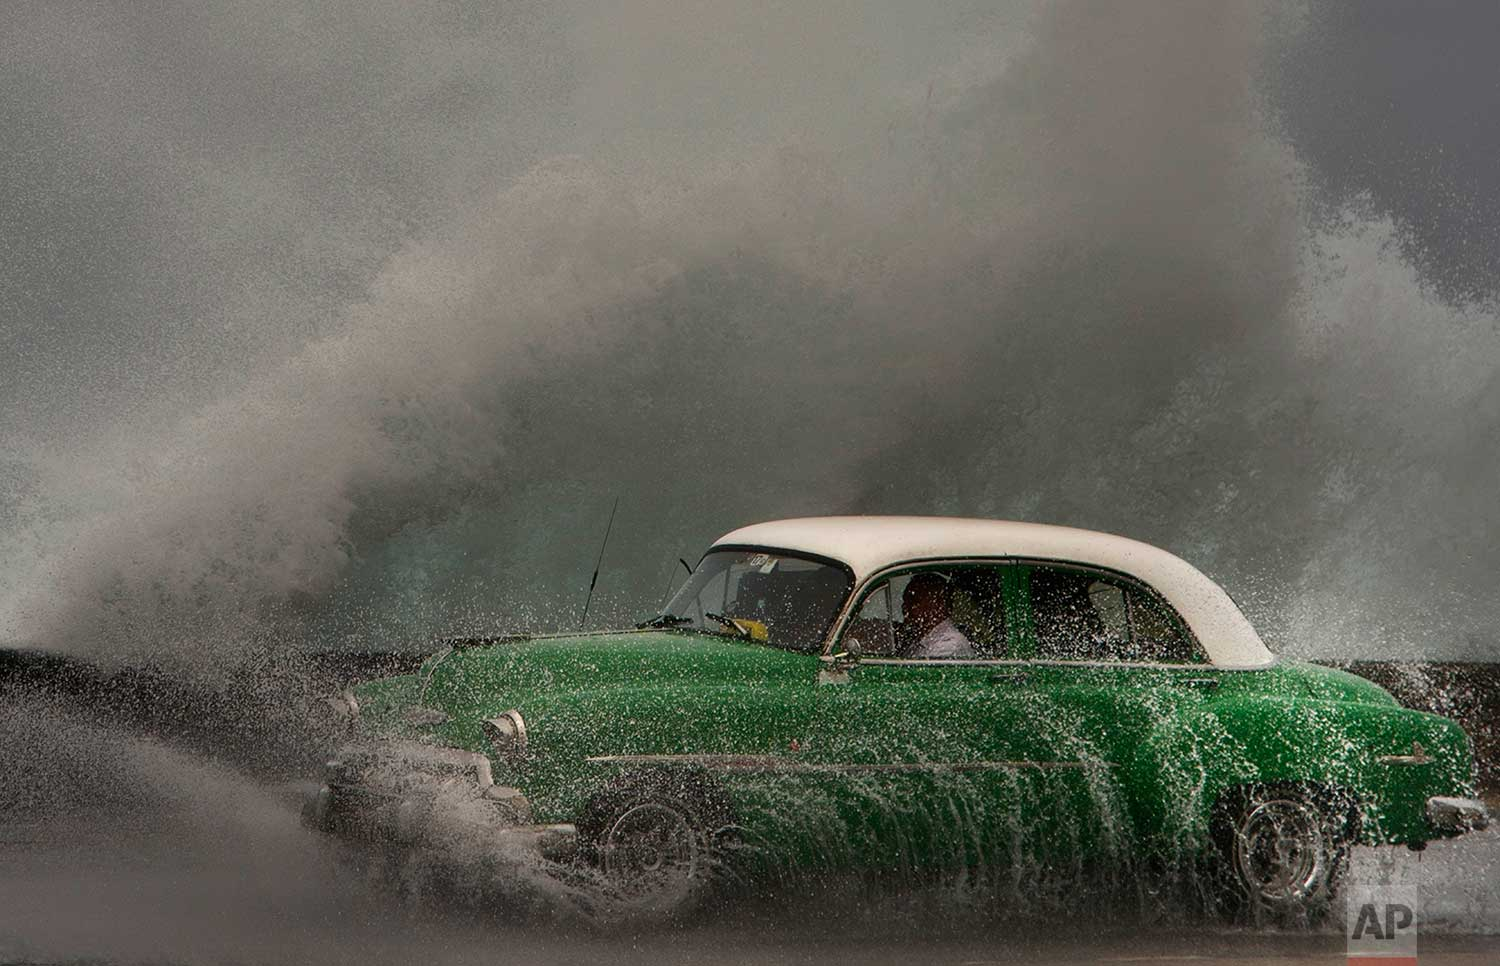 Waves crash against the Malecon sea wall as a taxi drives past in a classic American car in Havana, Cuba, Tuesday, March 19, 2019. (AP Photo/Ramon Espinosa)